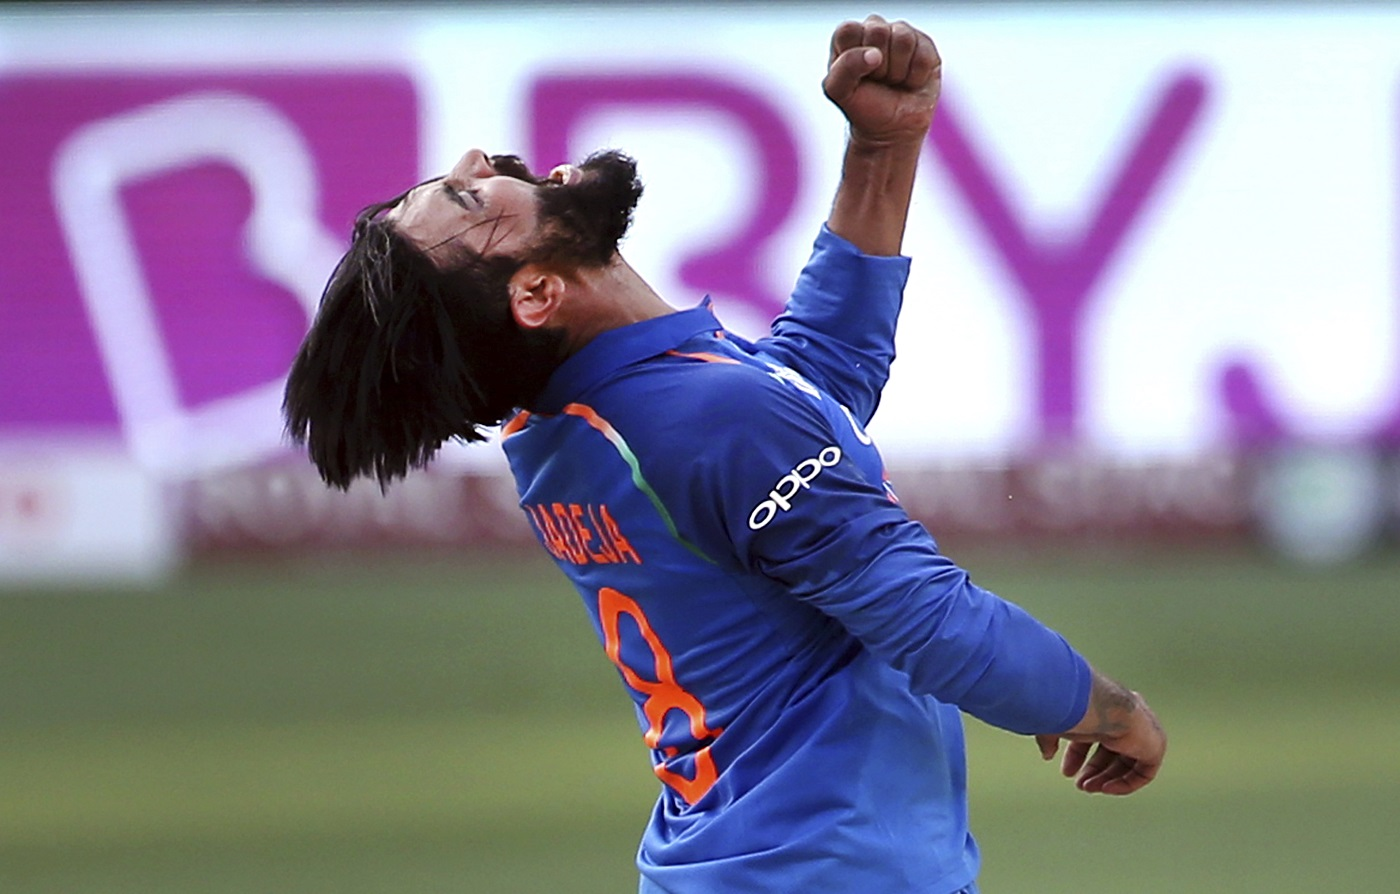 India demolish Bangladesh with convincing seven-wicket win in Super 4 stage of the Asia Cup